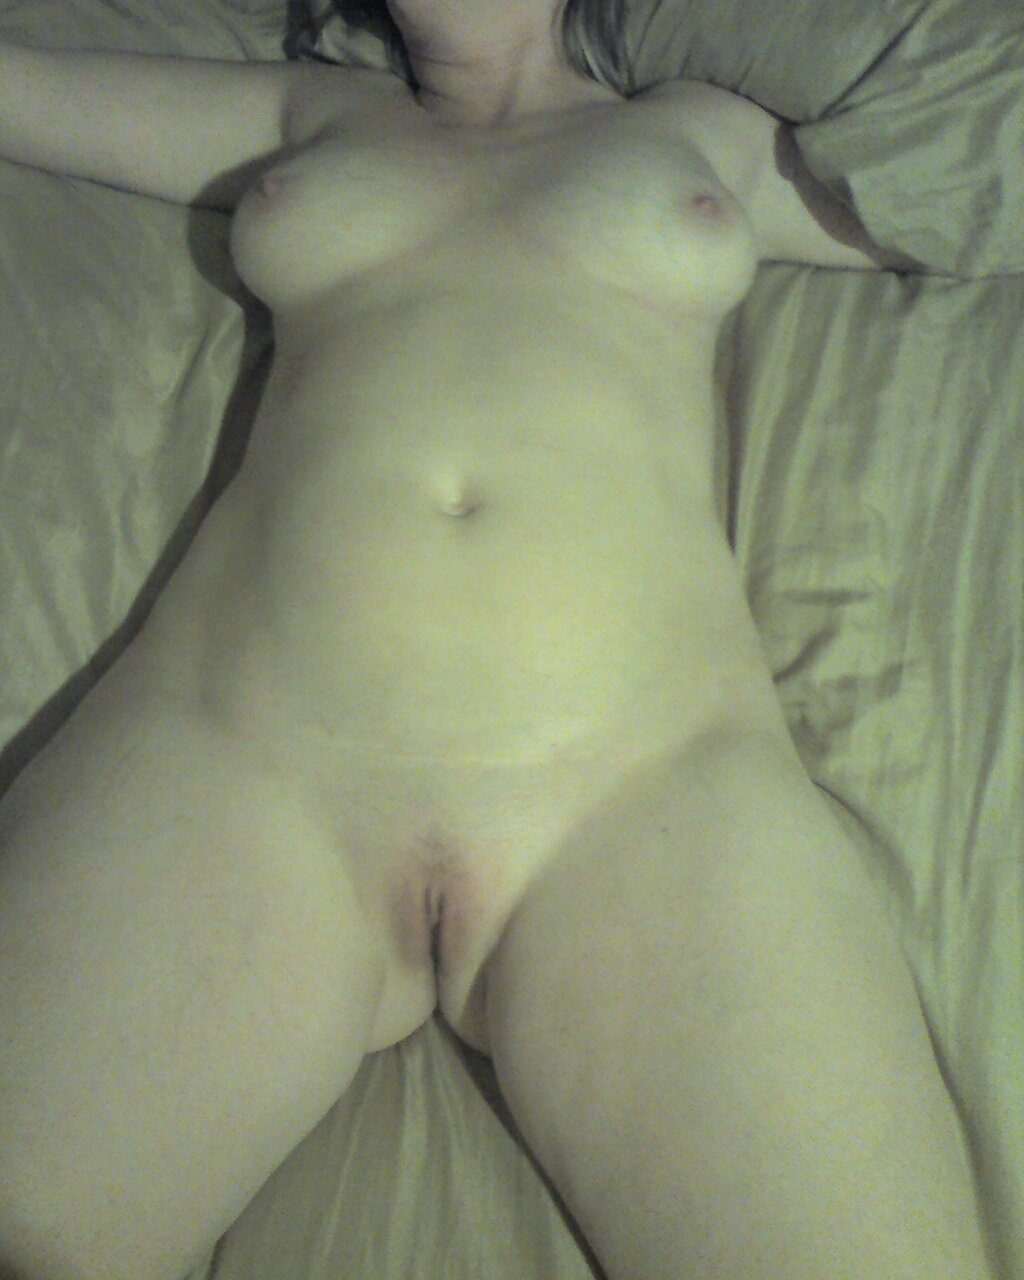 Matue mom slut tube